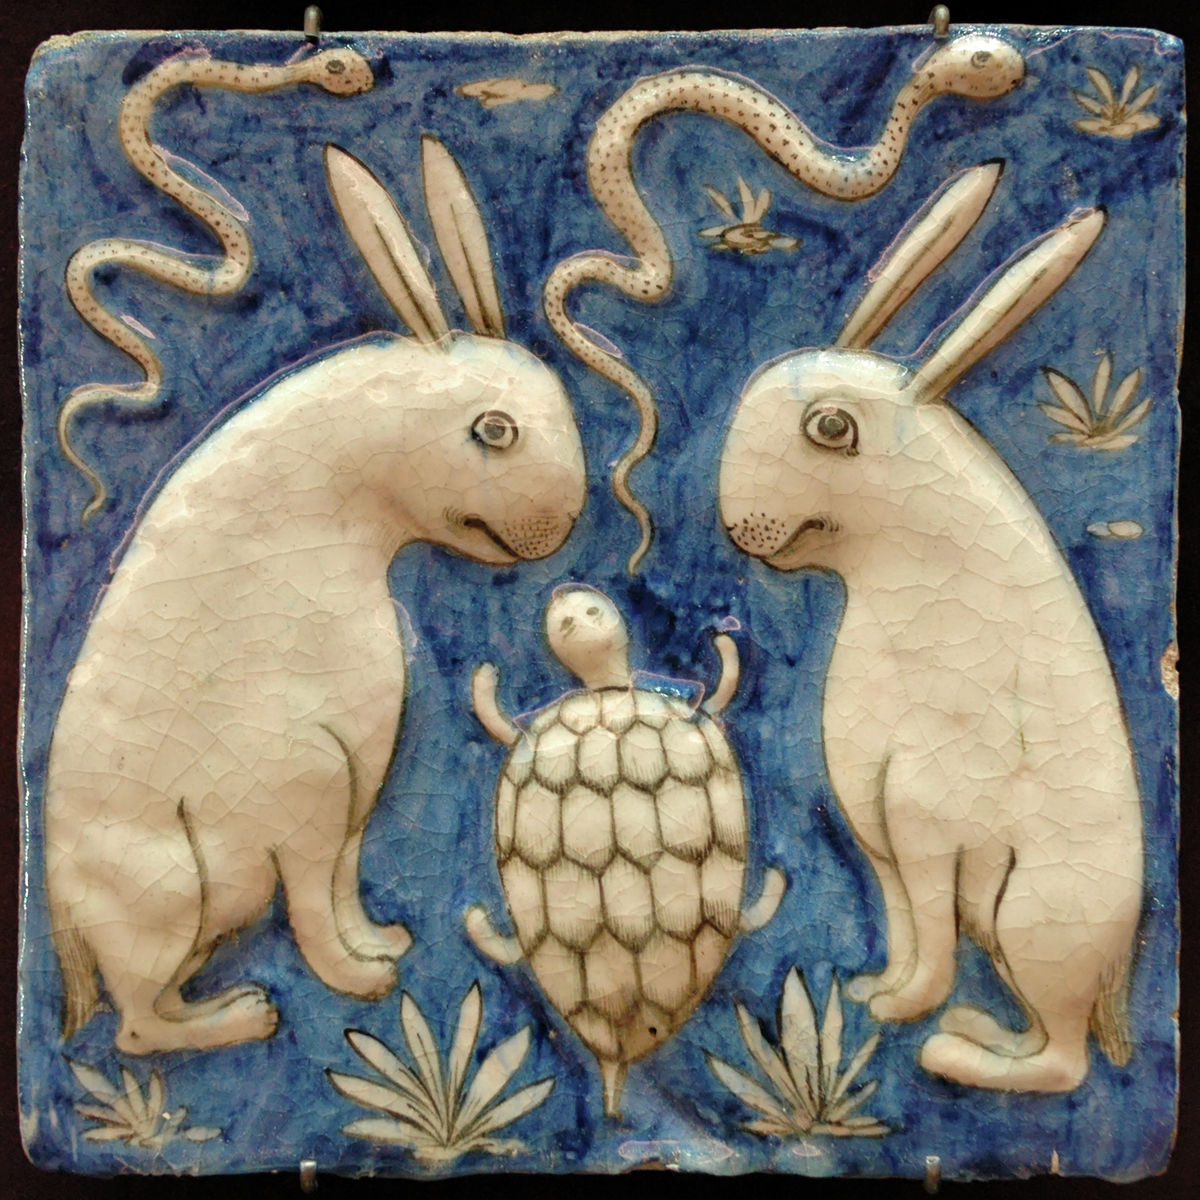 Rabbits and Tortoise